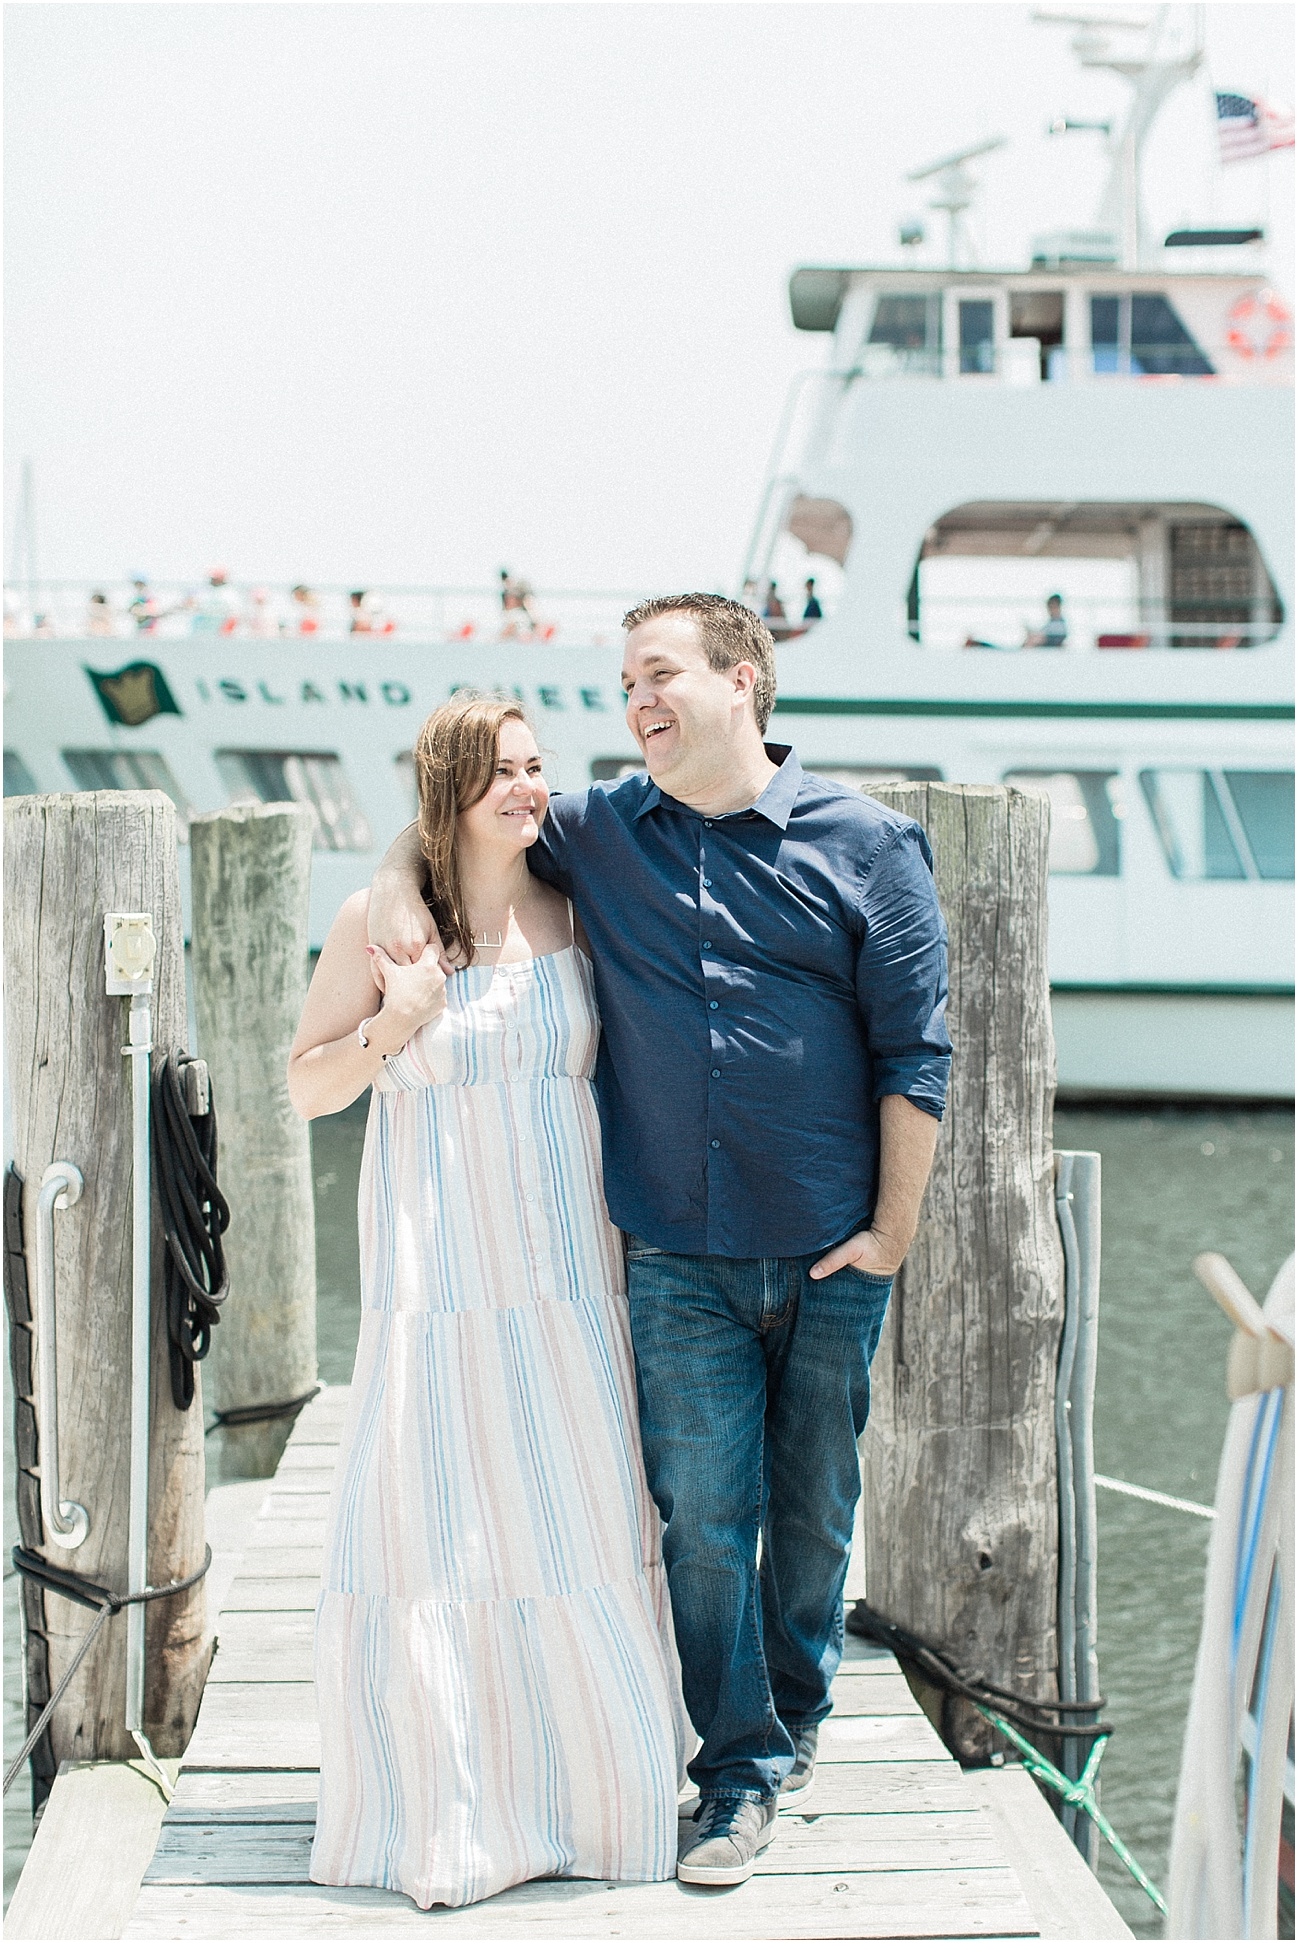 falmouth_liz_eric_proposal_boat_parents_sign_will_you_marry_me_cape_cod_boston_wedding_photographer_meredith_jane_photography_photo_0516.jpg